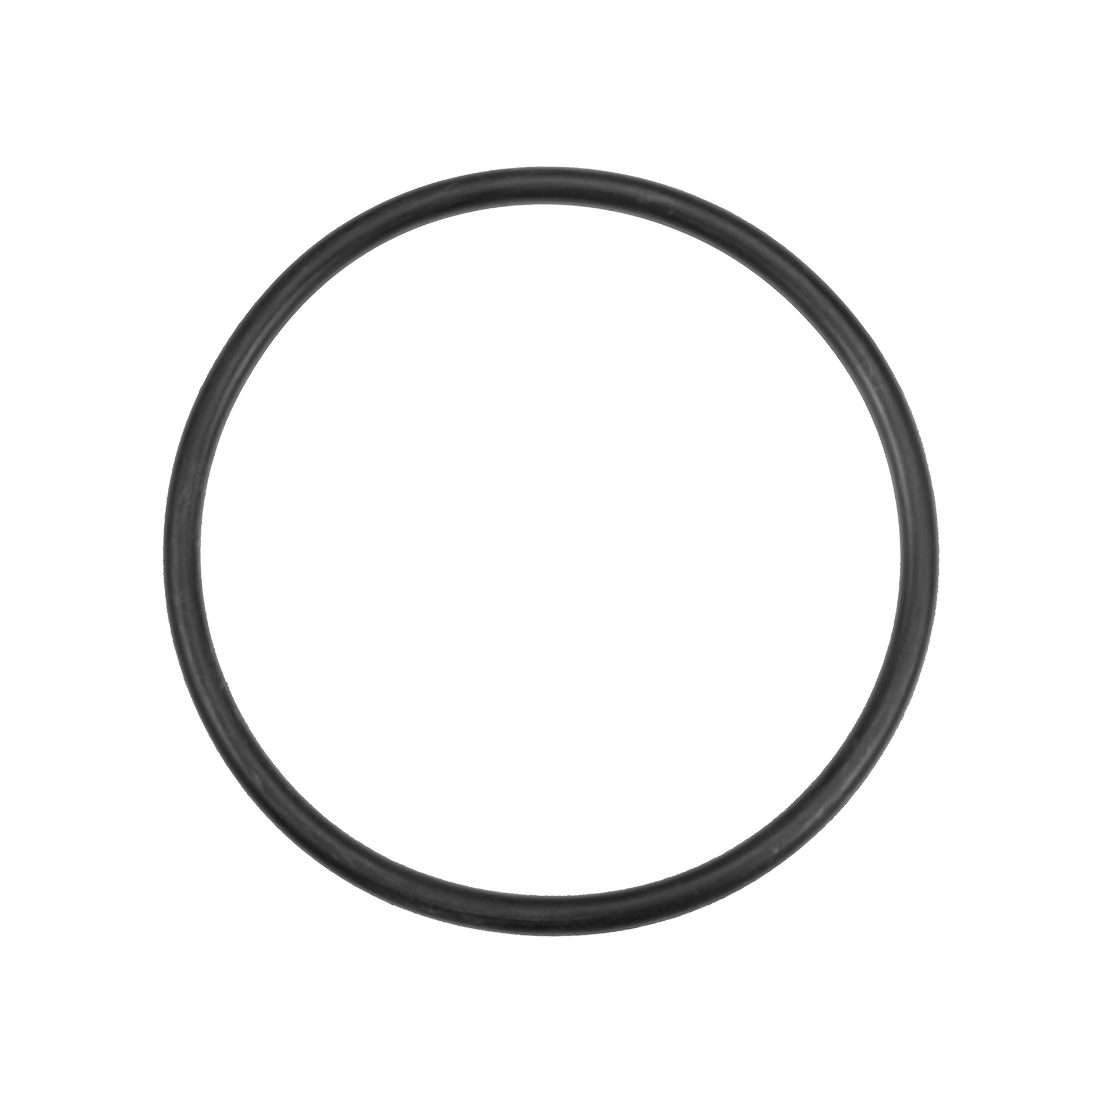 O-Rings Nitrile Rubber 103.6mm x 115mm x 5.7mm Round Seal Gasket